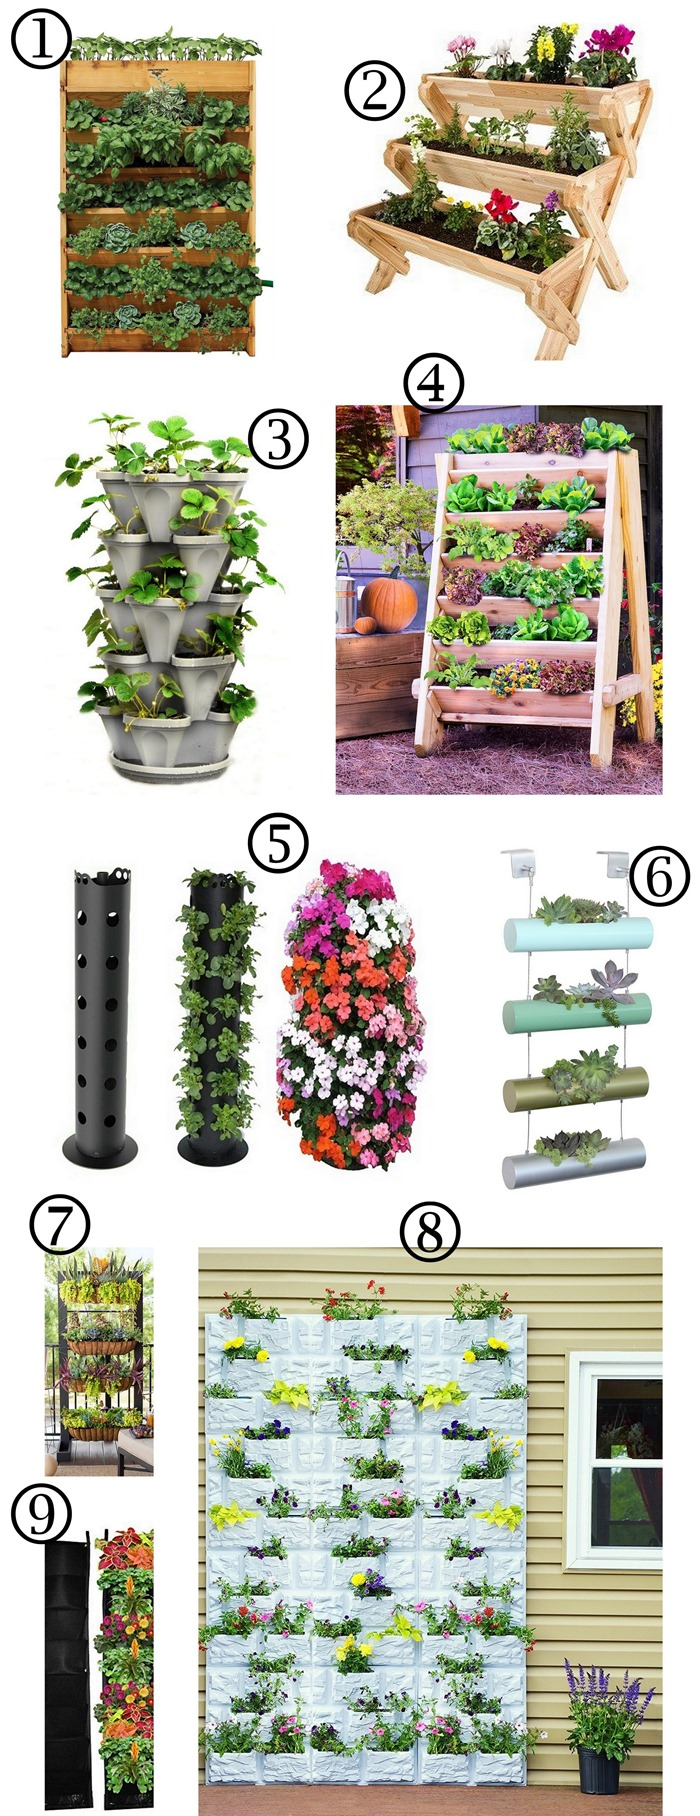 Vertical Planters or 'Living Walls' available for purchase! {Reality Daydream}.jpg